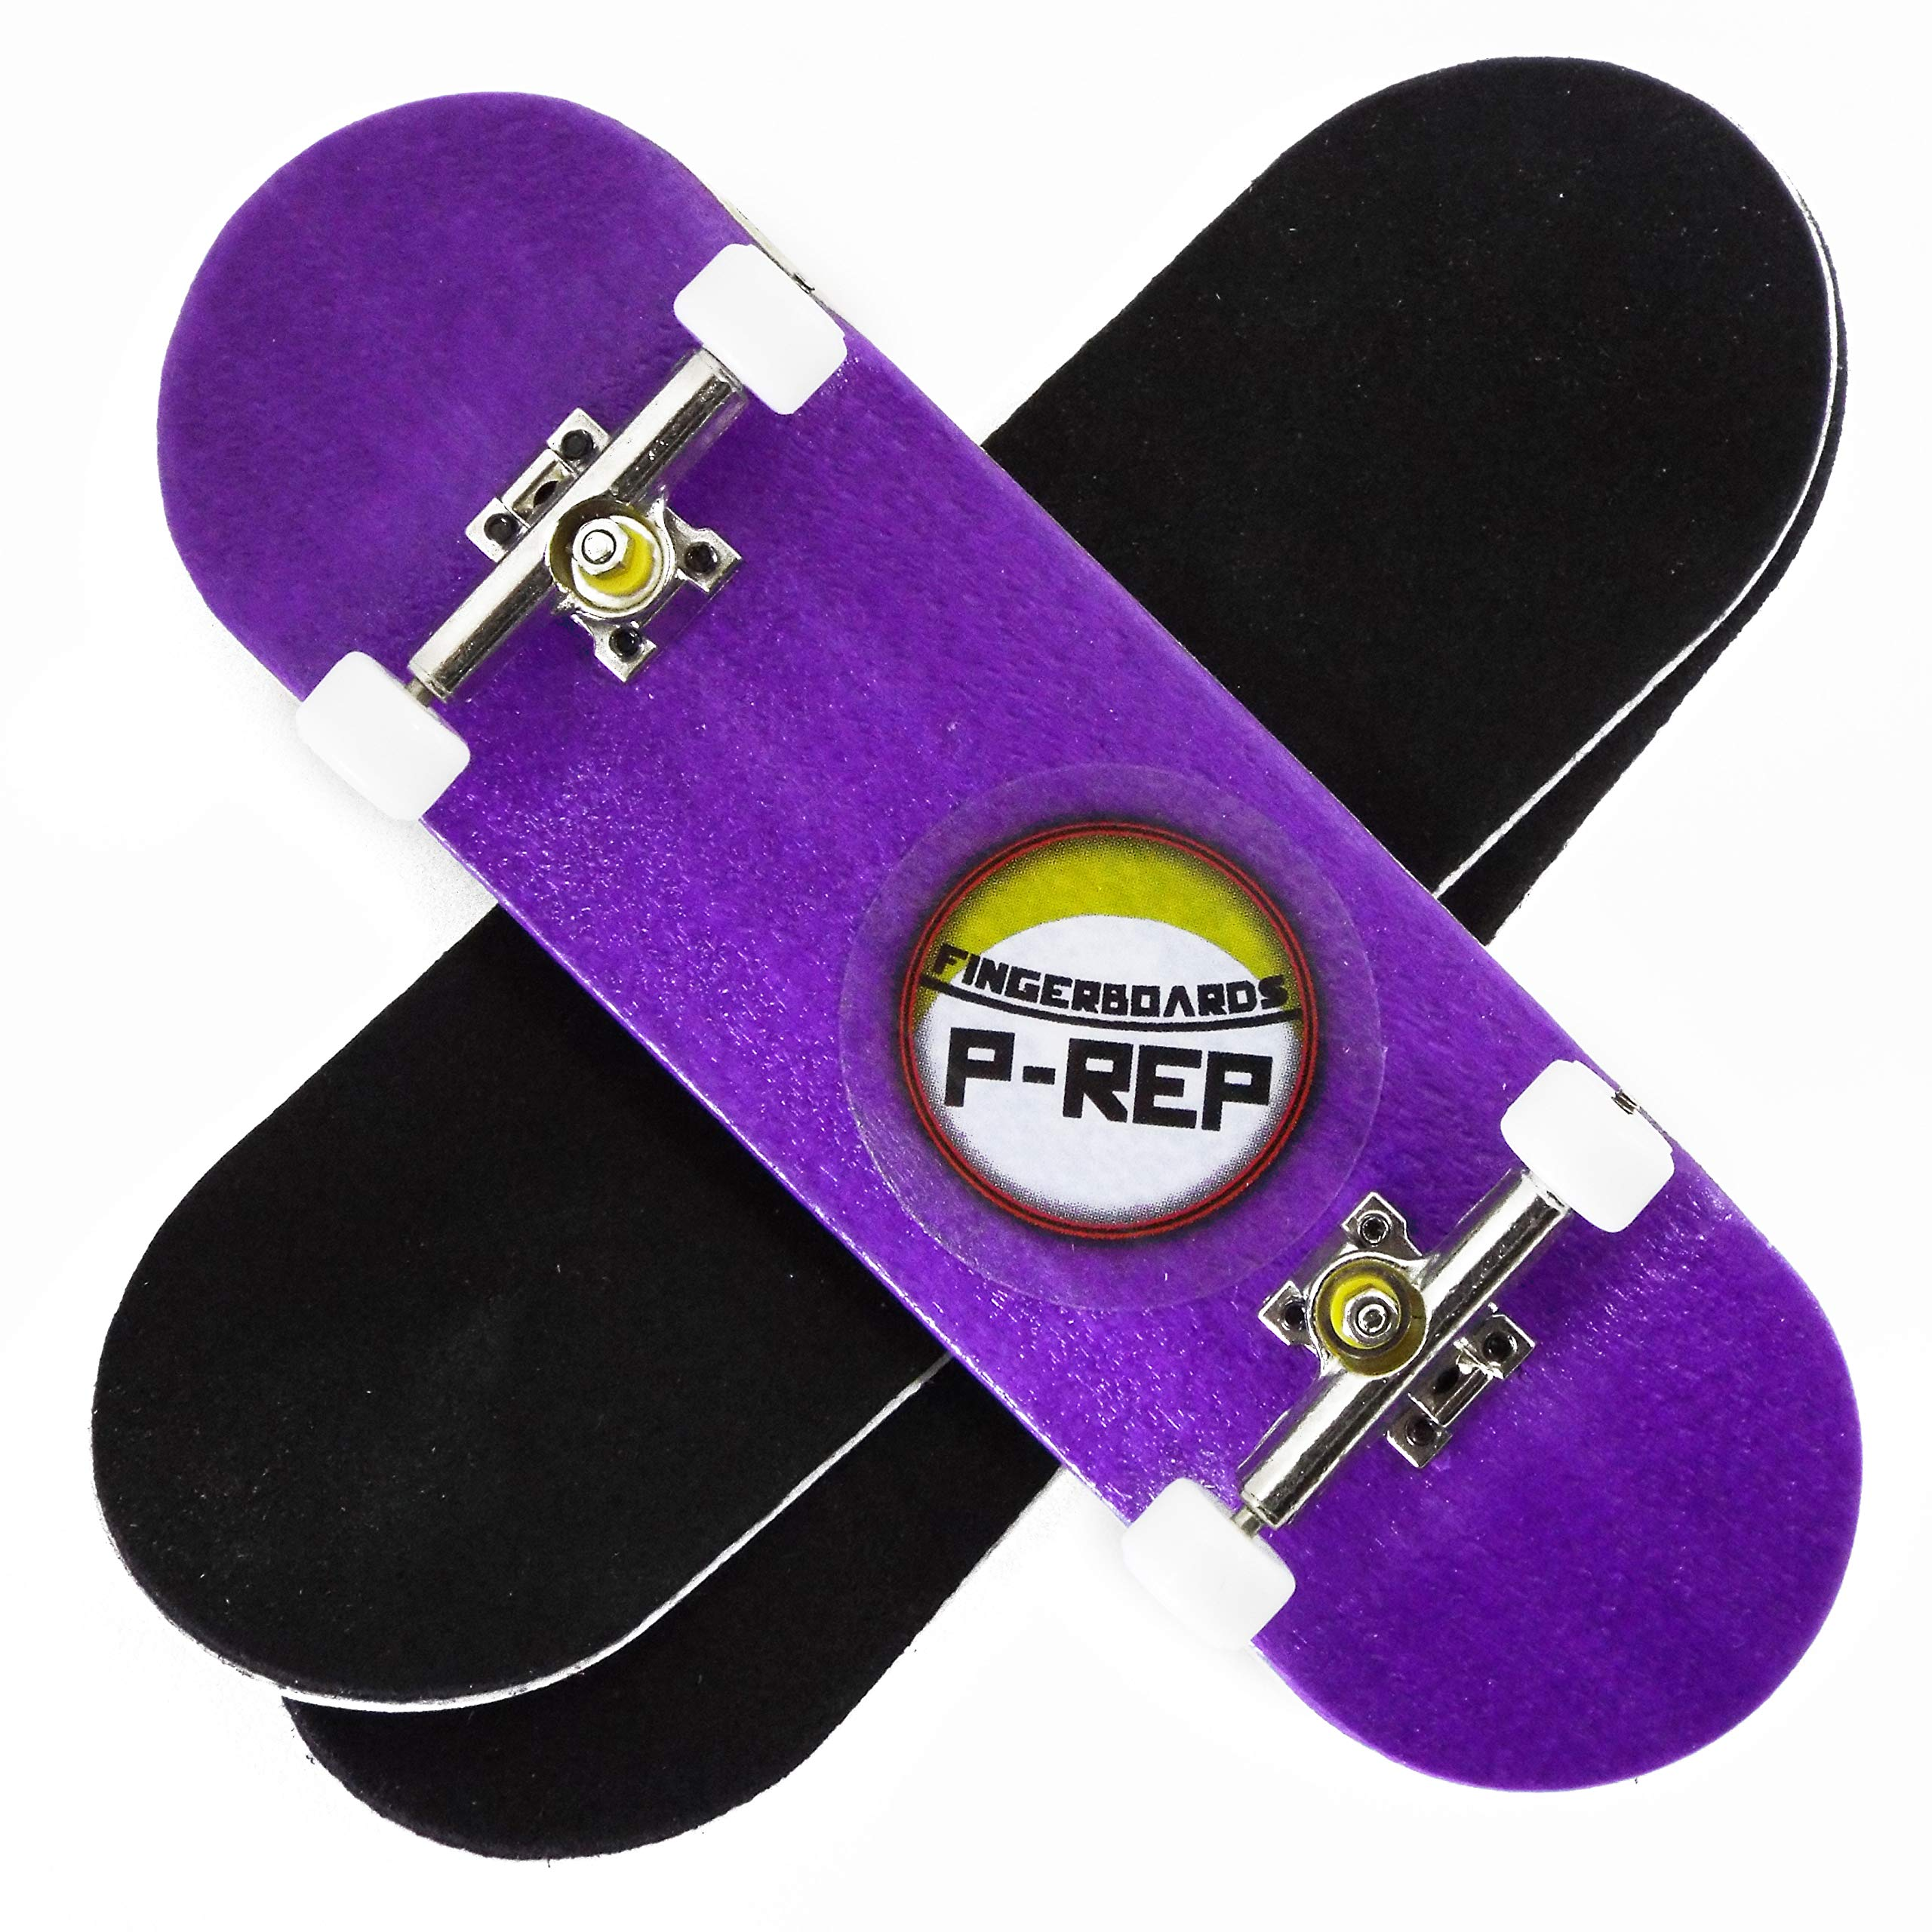 P-REP Starter Complete Wooden Fingerboard 30mm x 100mm (Purple) by P-REP